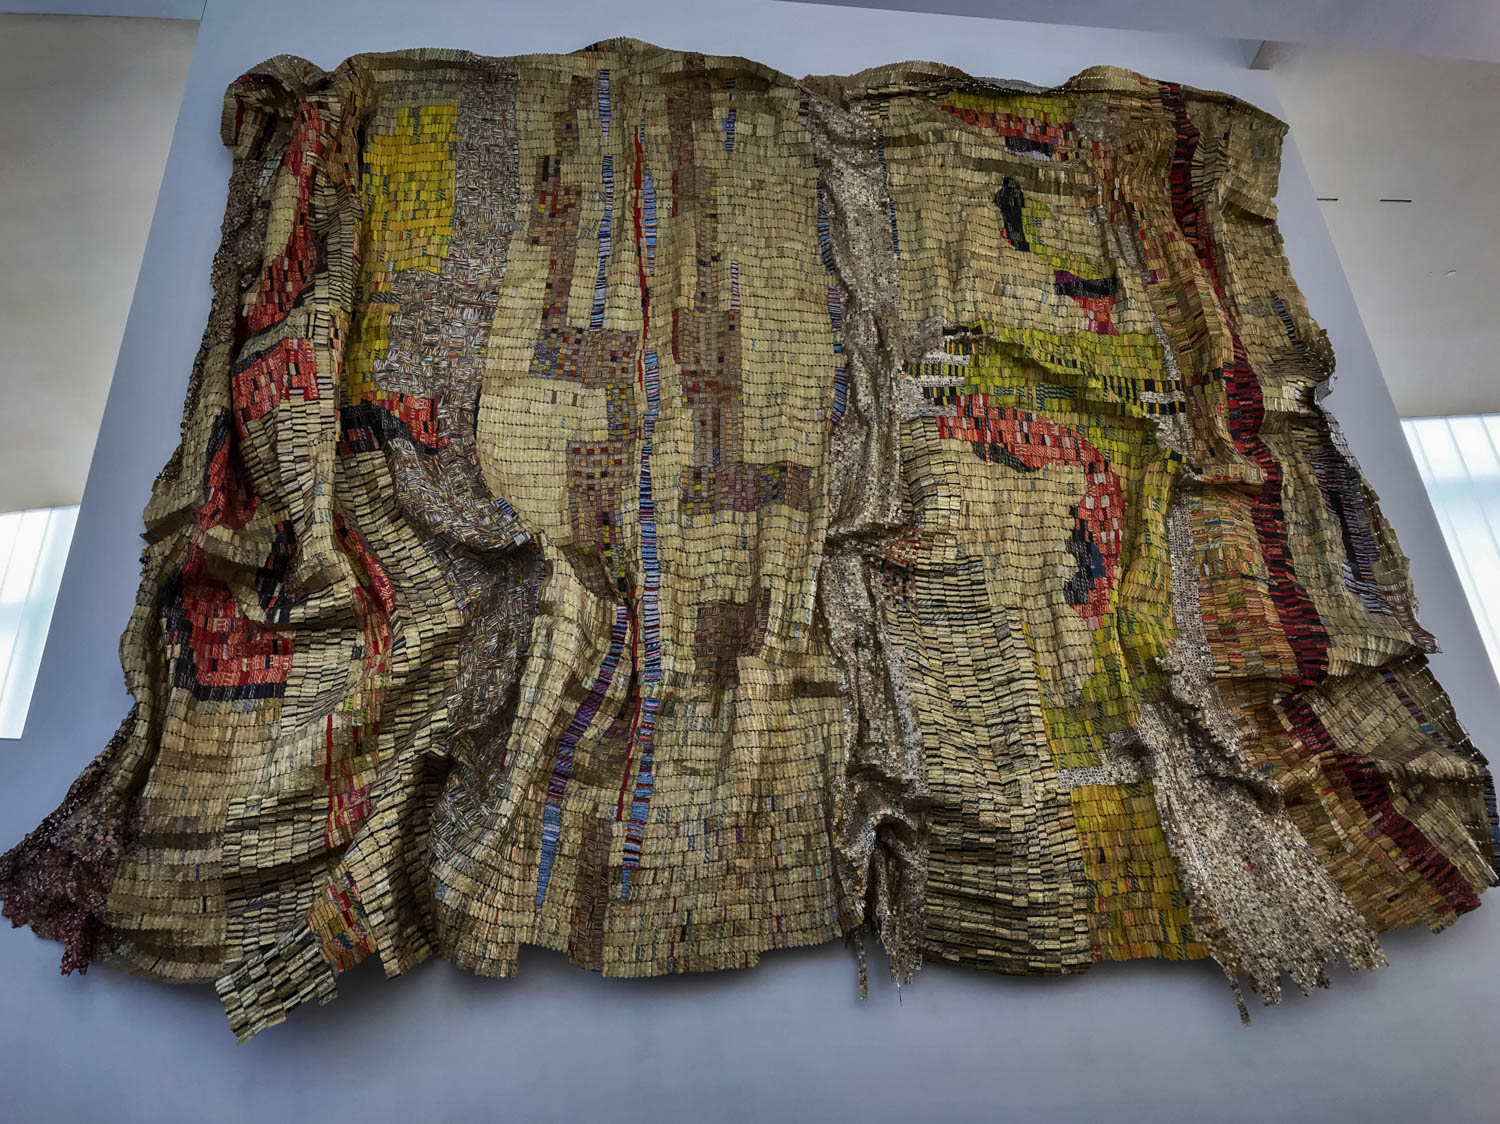 """Dusasa I , 2007 by El Anatsui (1944-) Found aluminum and copper wire. This very large wall hanging was one of the first art pieces that we saw after entering the Museum. """" Dusasa I was created from recycled liquor-bottle tops that have been flattened and stitched together using copper wire. Working with the metal shapes, El Anatsui allows the material and colors to suggest the composition. The artist's use of liquor-bottle tops acknowledges the historical role of liquor as a commodity traded by colonial powers for slaves and its ritual use as a libation, when it is poured as a form of prayer. . . The title  Dusasa comes from Ewe words (people of Ghana), da and sass, meaning a fusion of disparate elements on a monumental scale.!"""